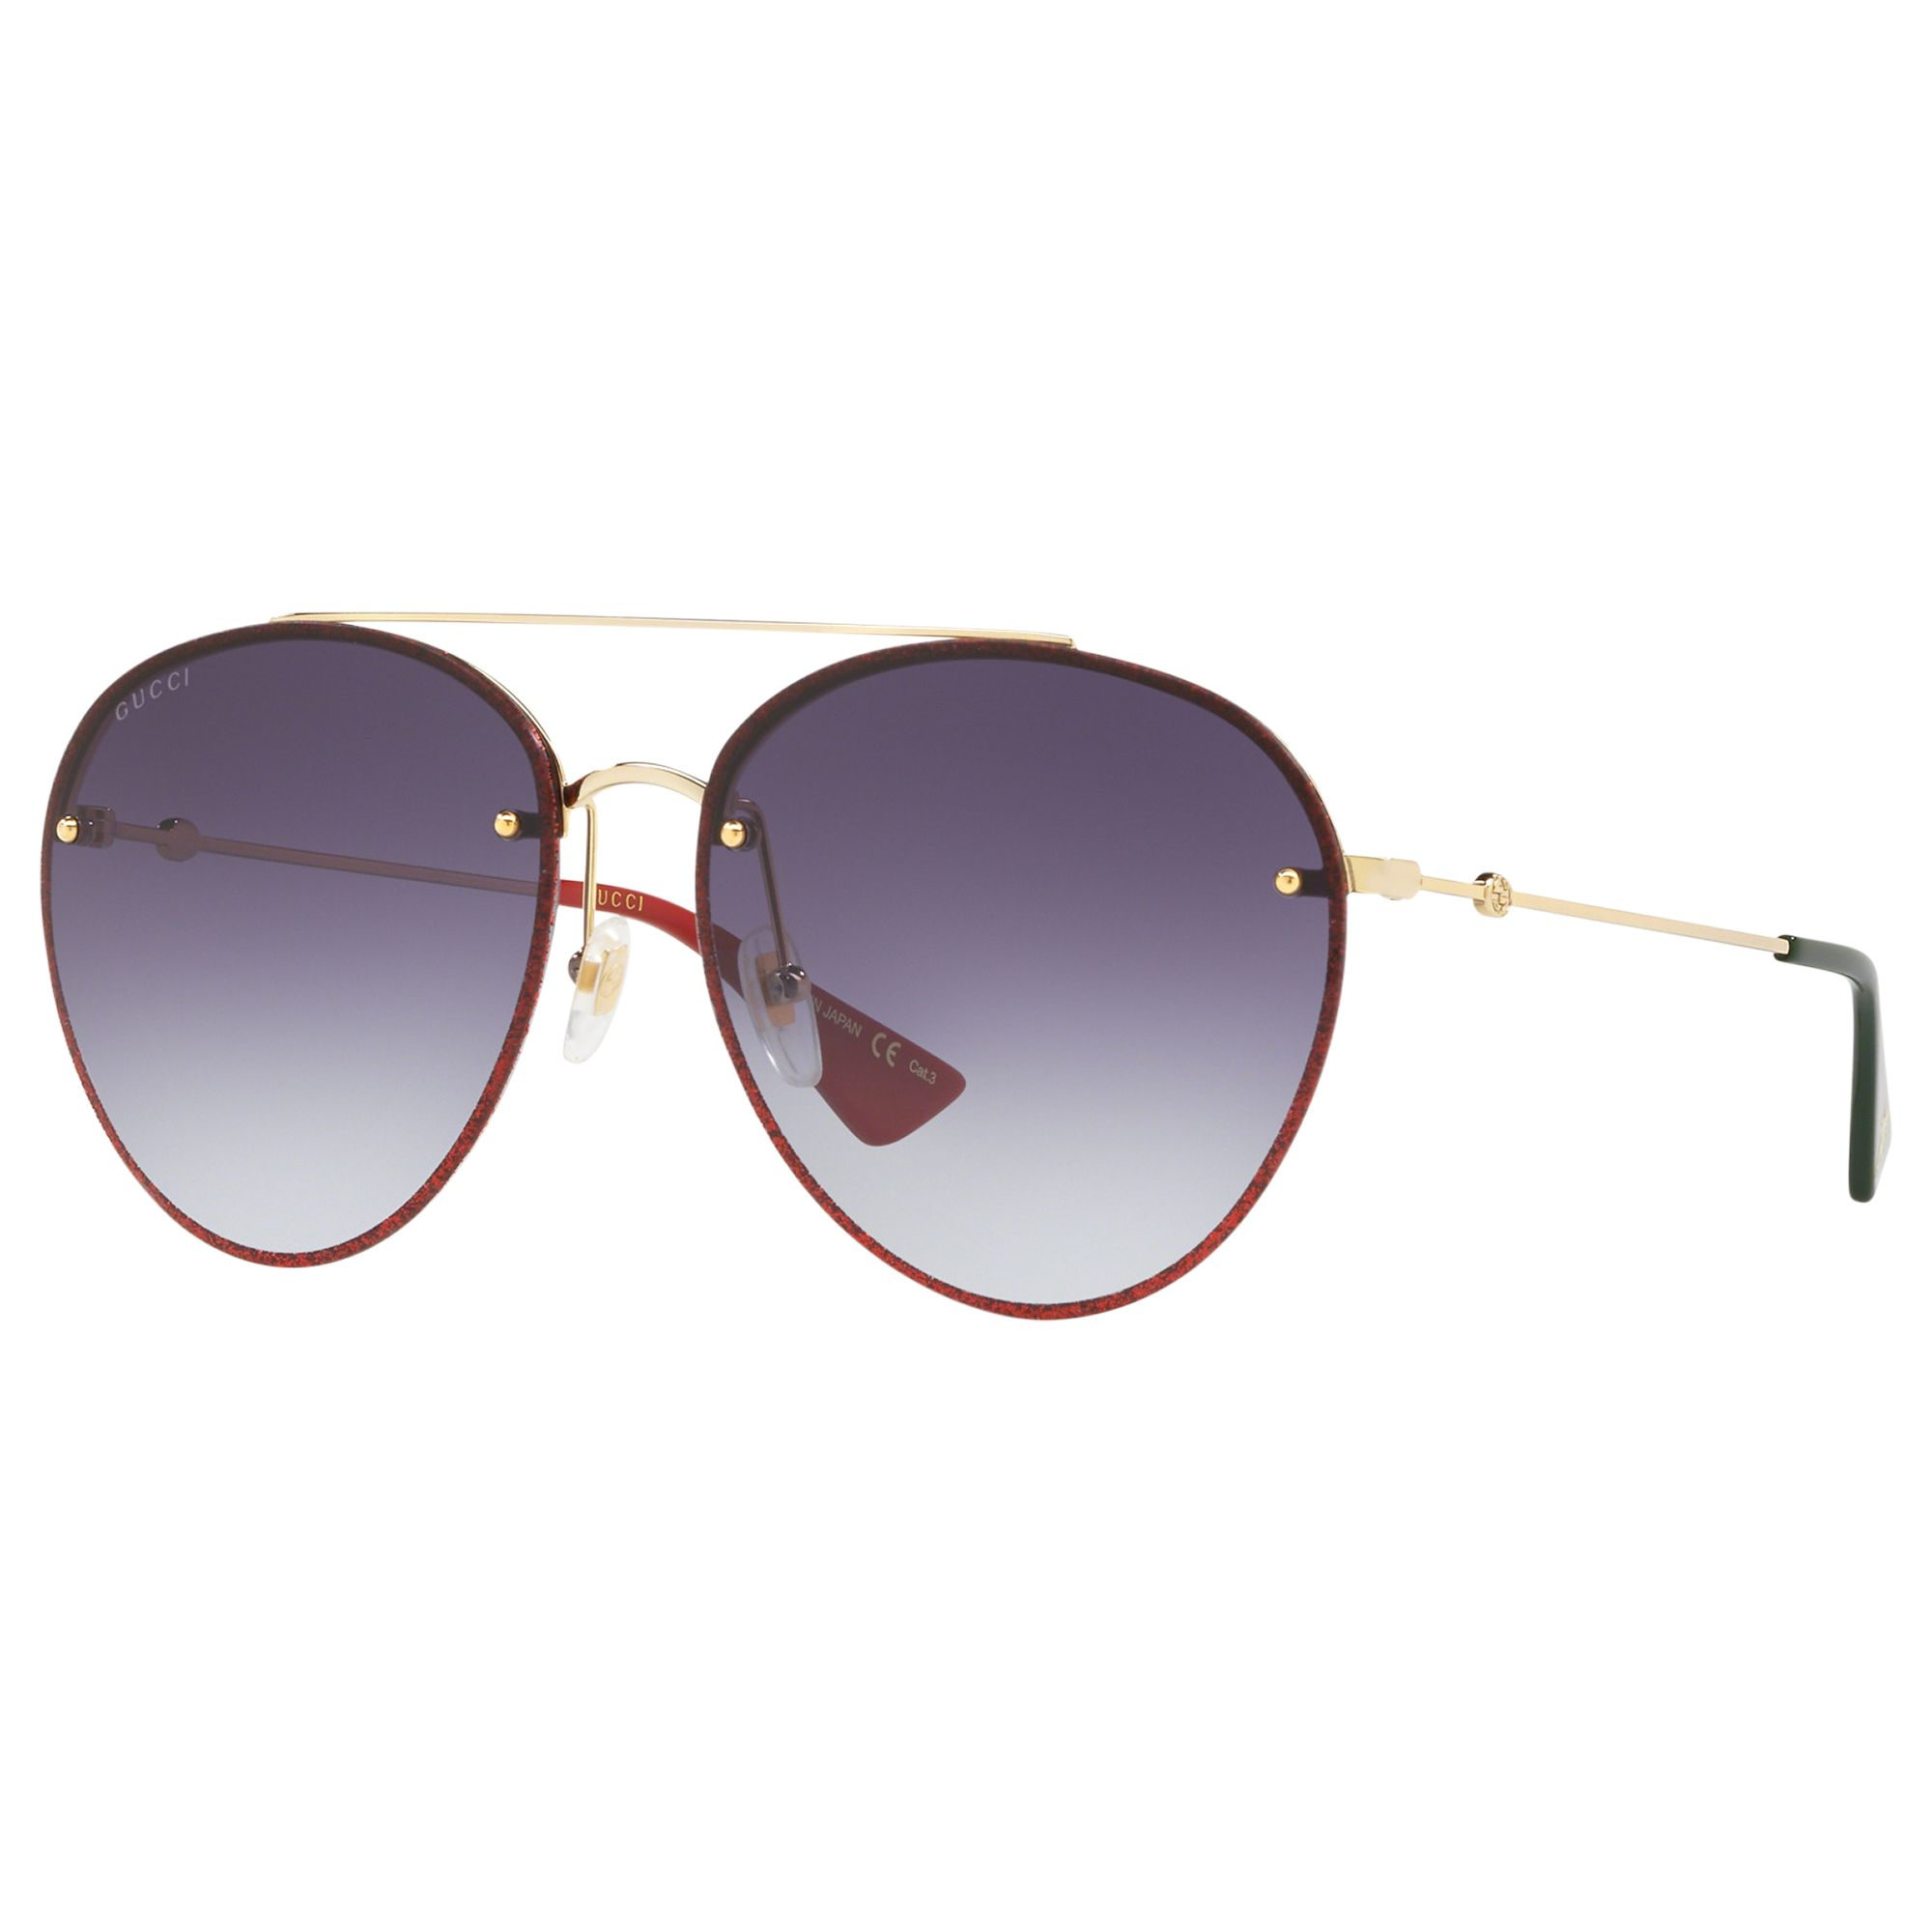 99ac773e91 Gucci GG0351S Women s Aviator Sunglasses at John Lewis   Partners